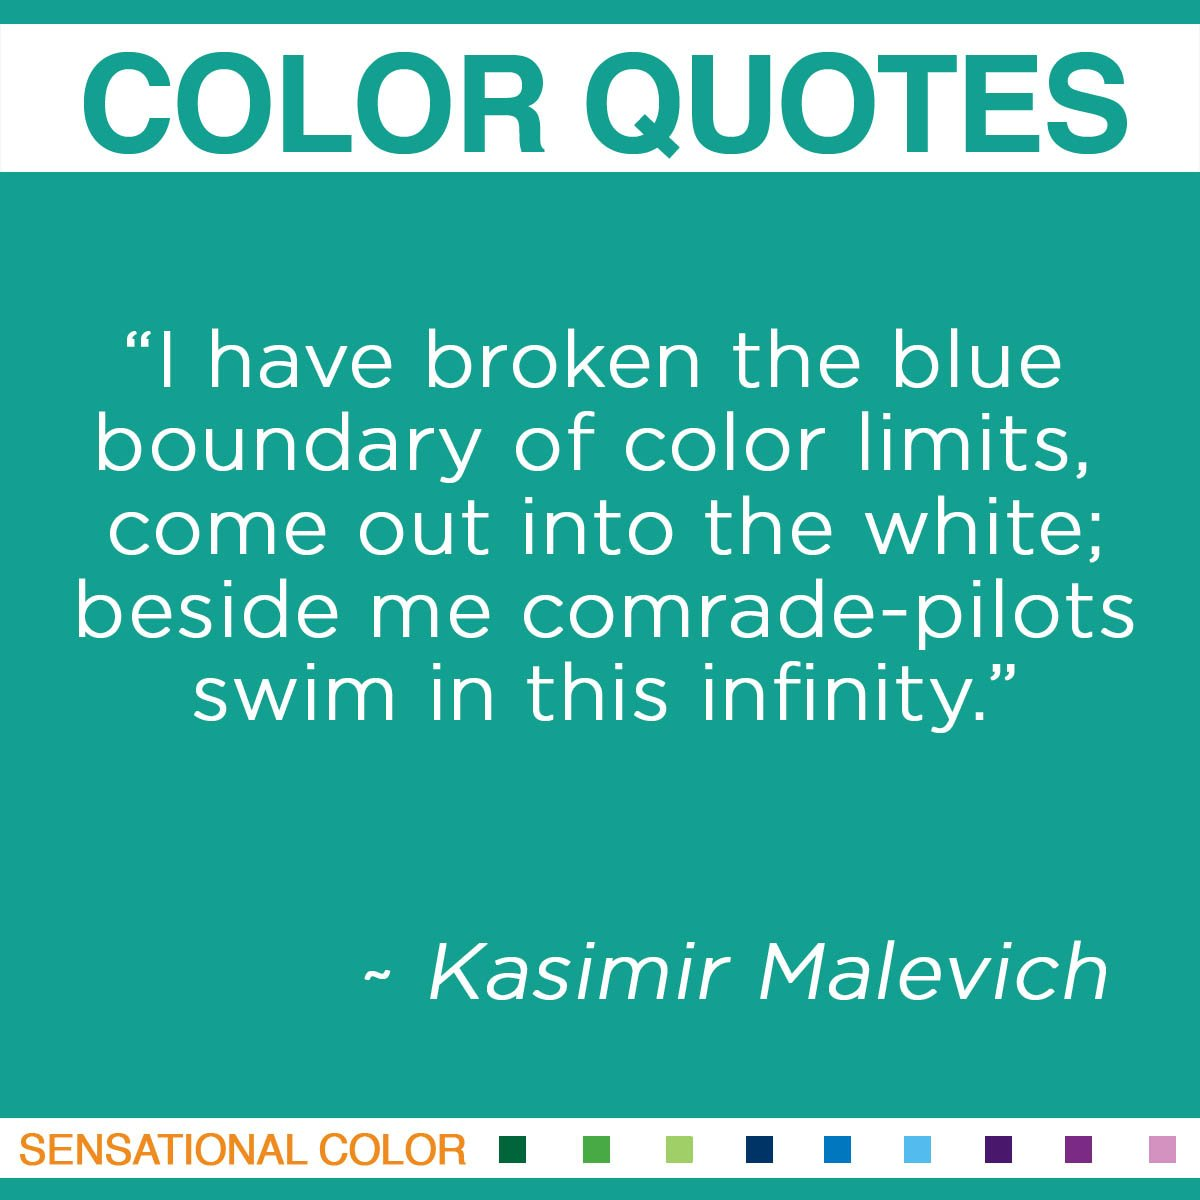 """I have broken the blue boundary of color limits, come out into the white; beside me comrade-pilots swim in this infinity."" - Kasimir Malevich"